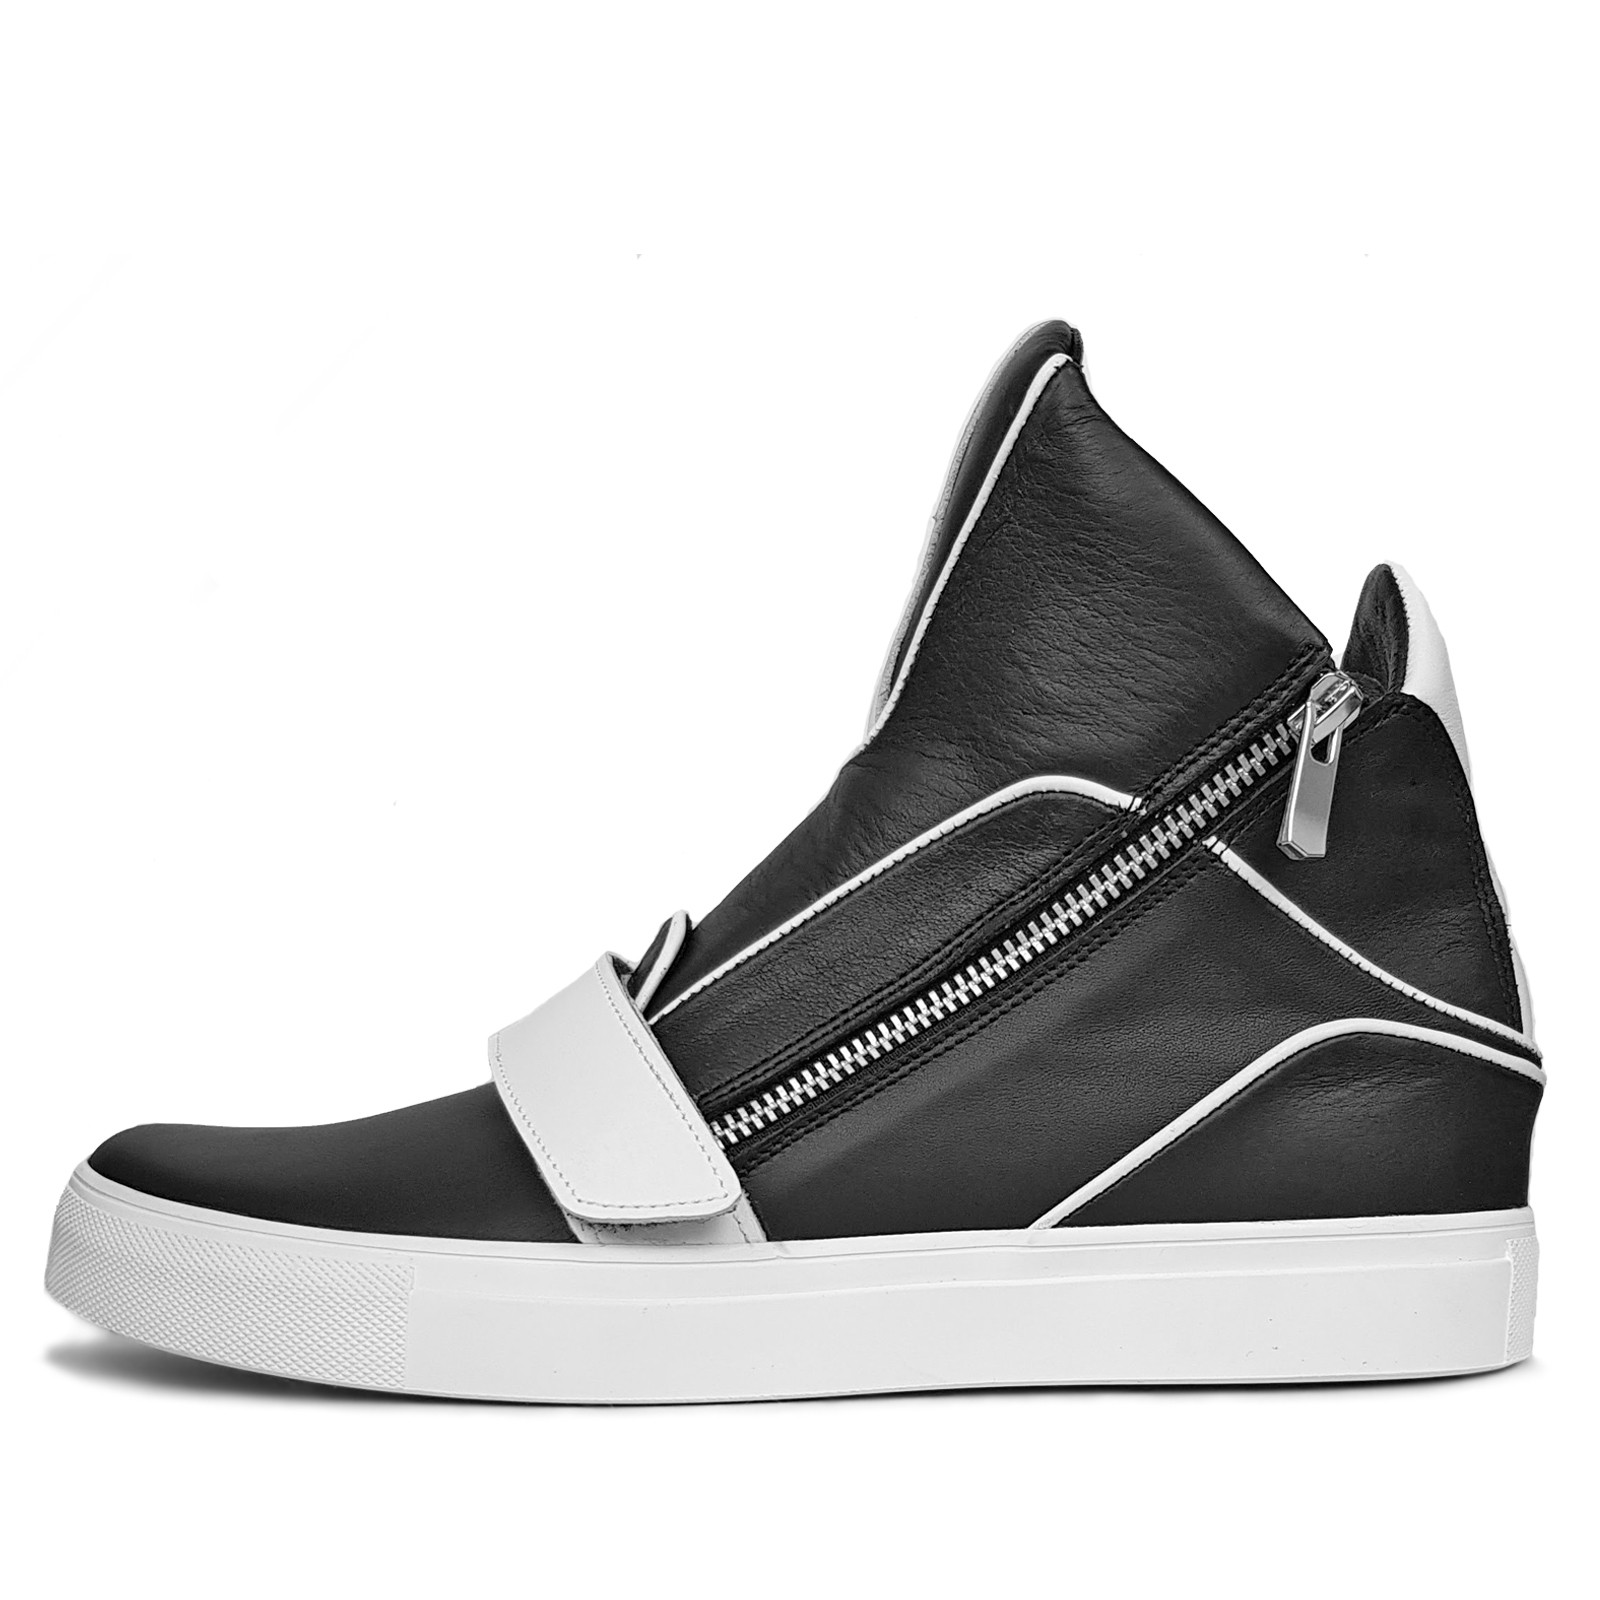 896a7b08dd8c Men's high-top sneakers with zipper - DYN WORLD